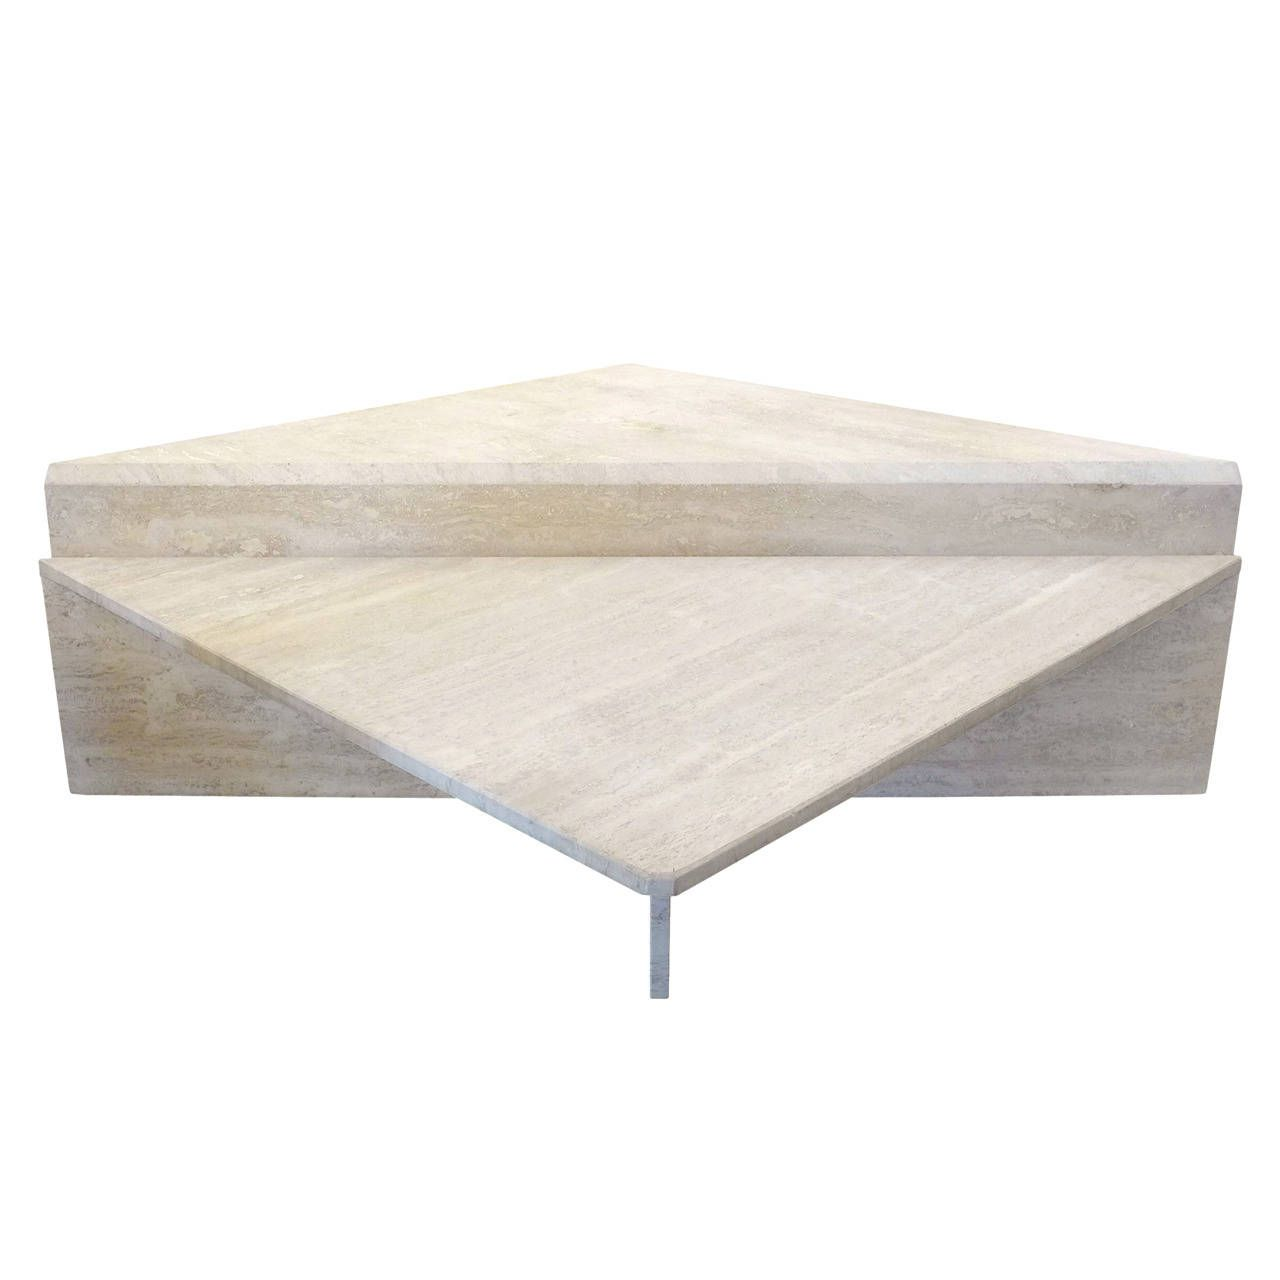 Two piece modular travertine coffee table travertine coffee and two piece modular travertine coffee table geotapseo Image collections